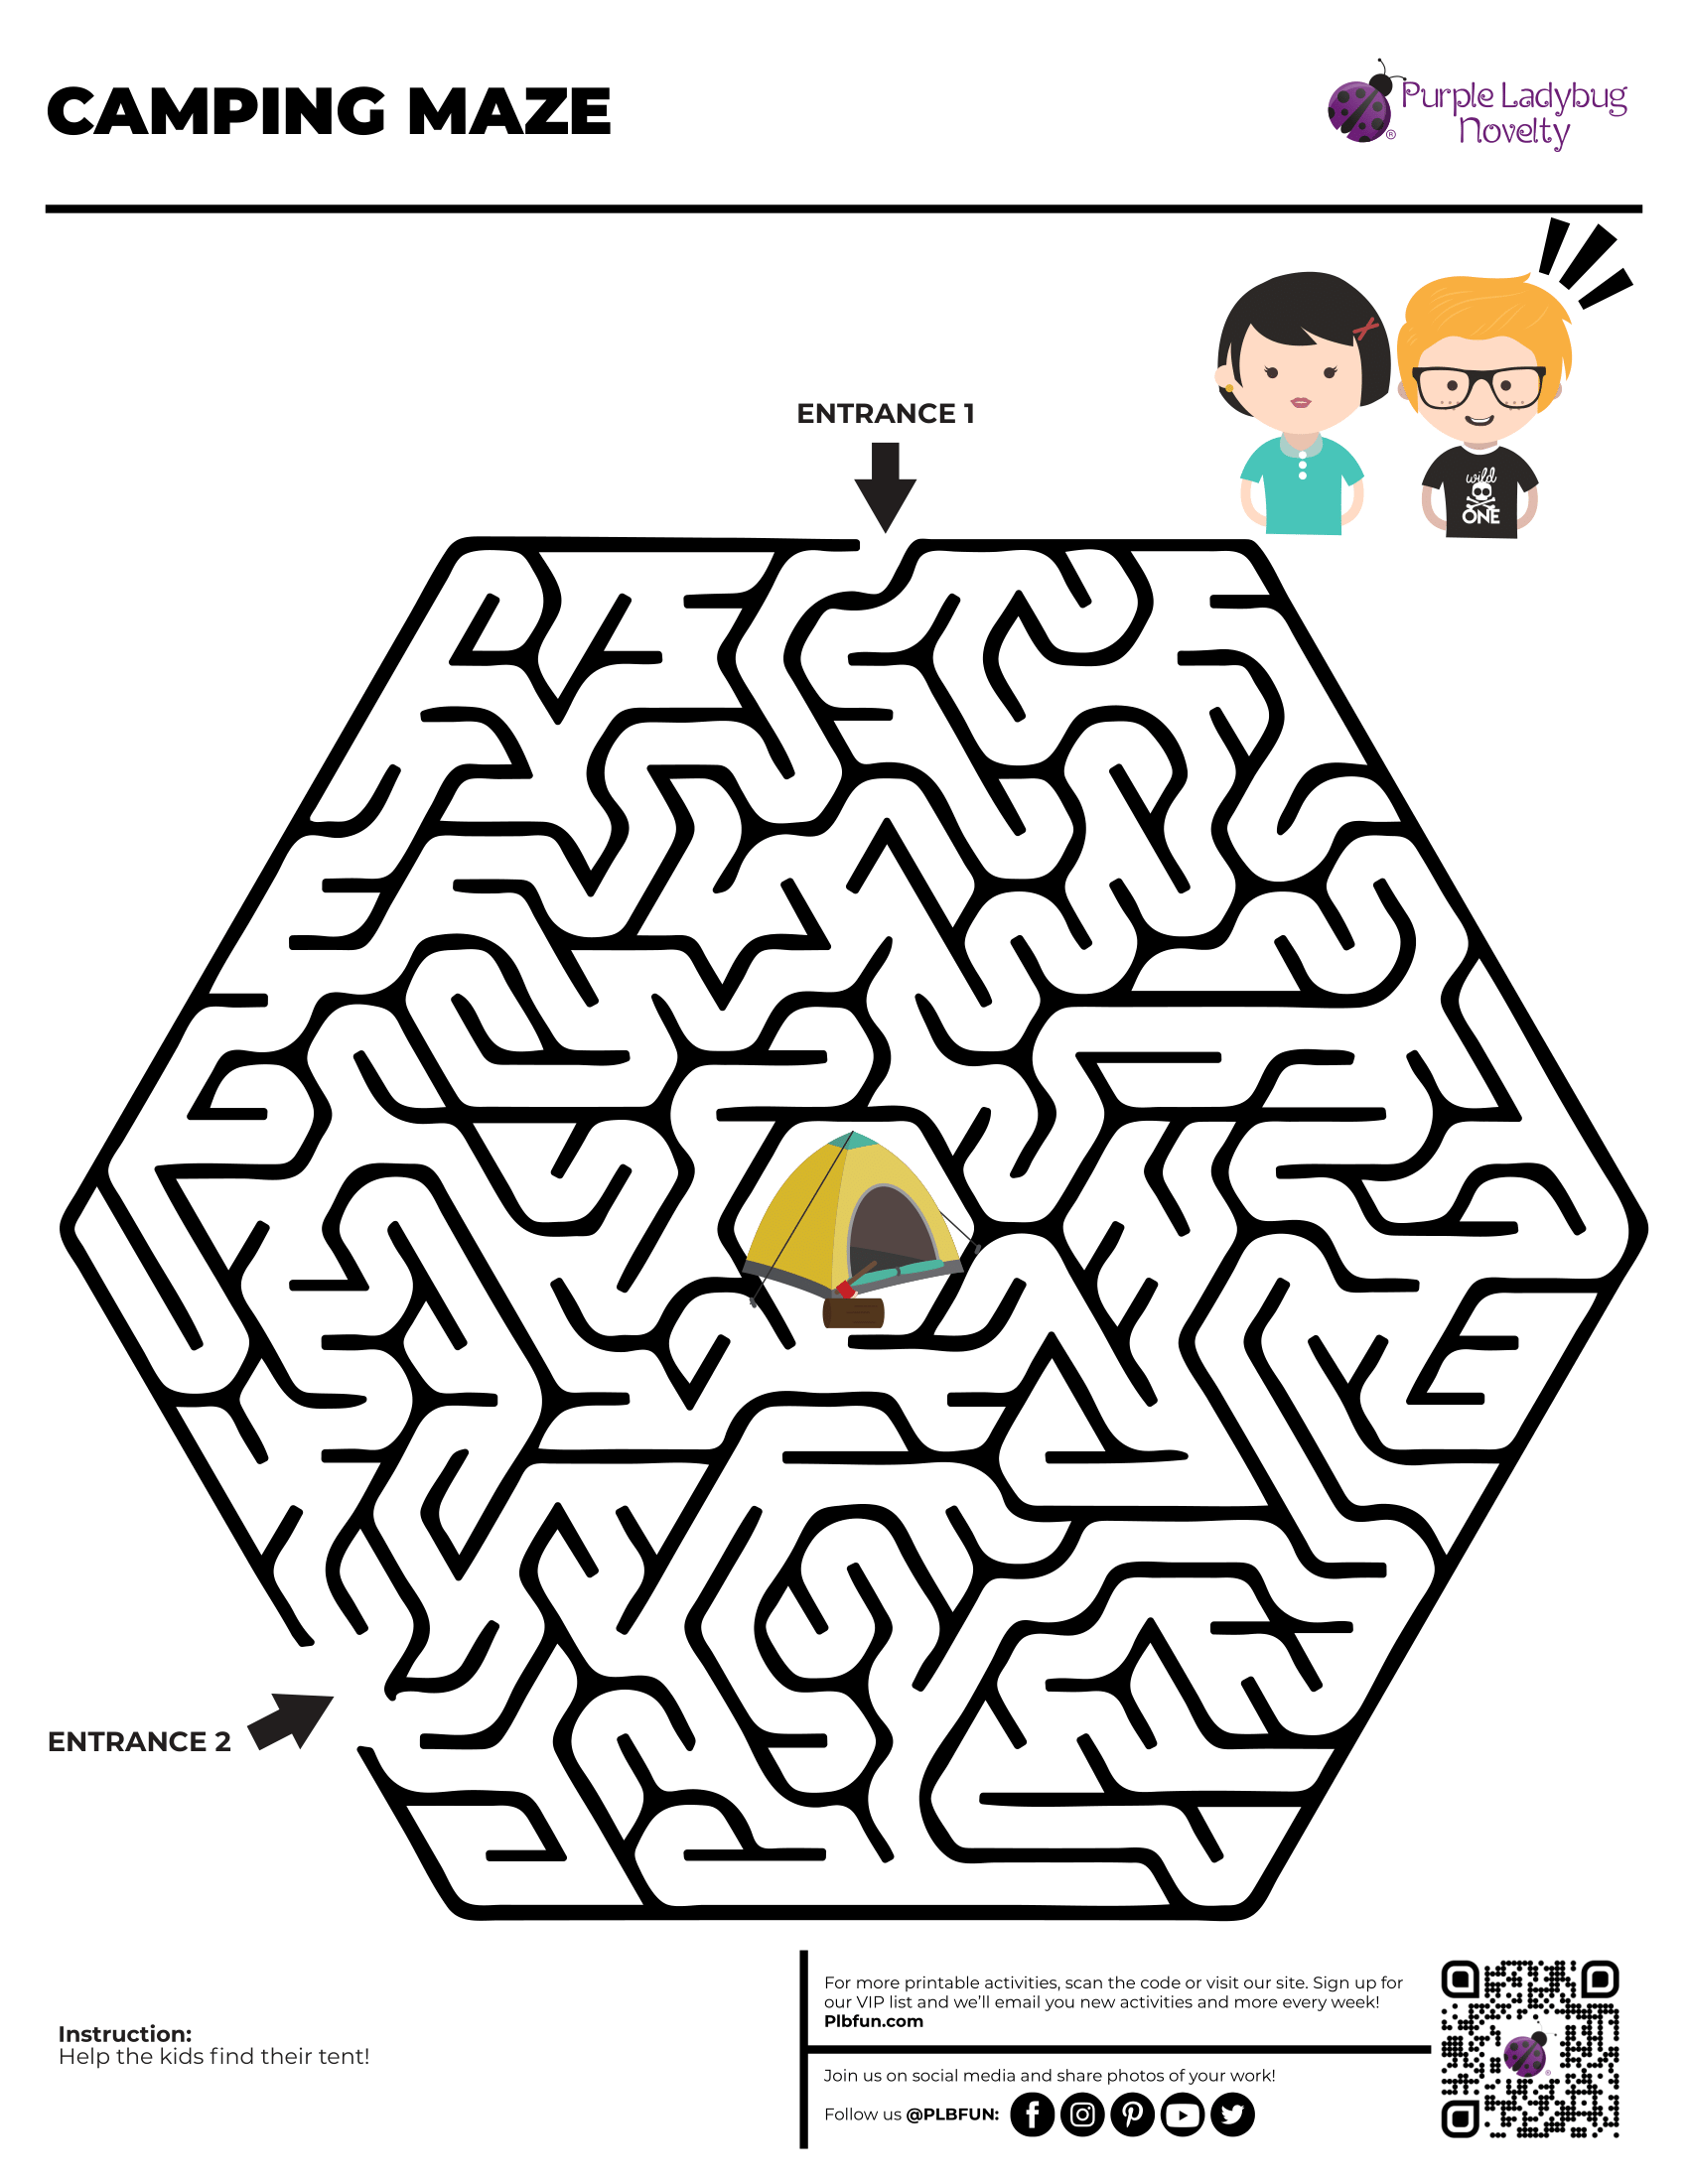 Camping Maze by PLBfun in 2020 Free printable activities